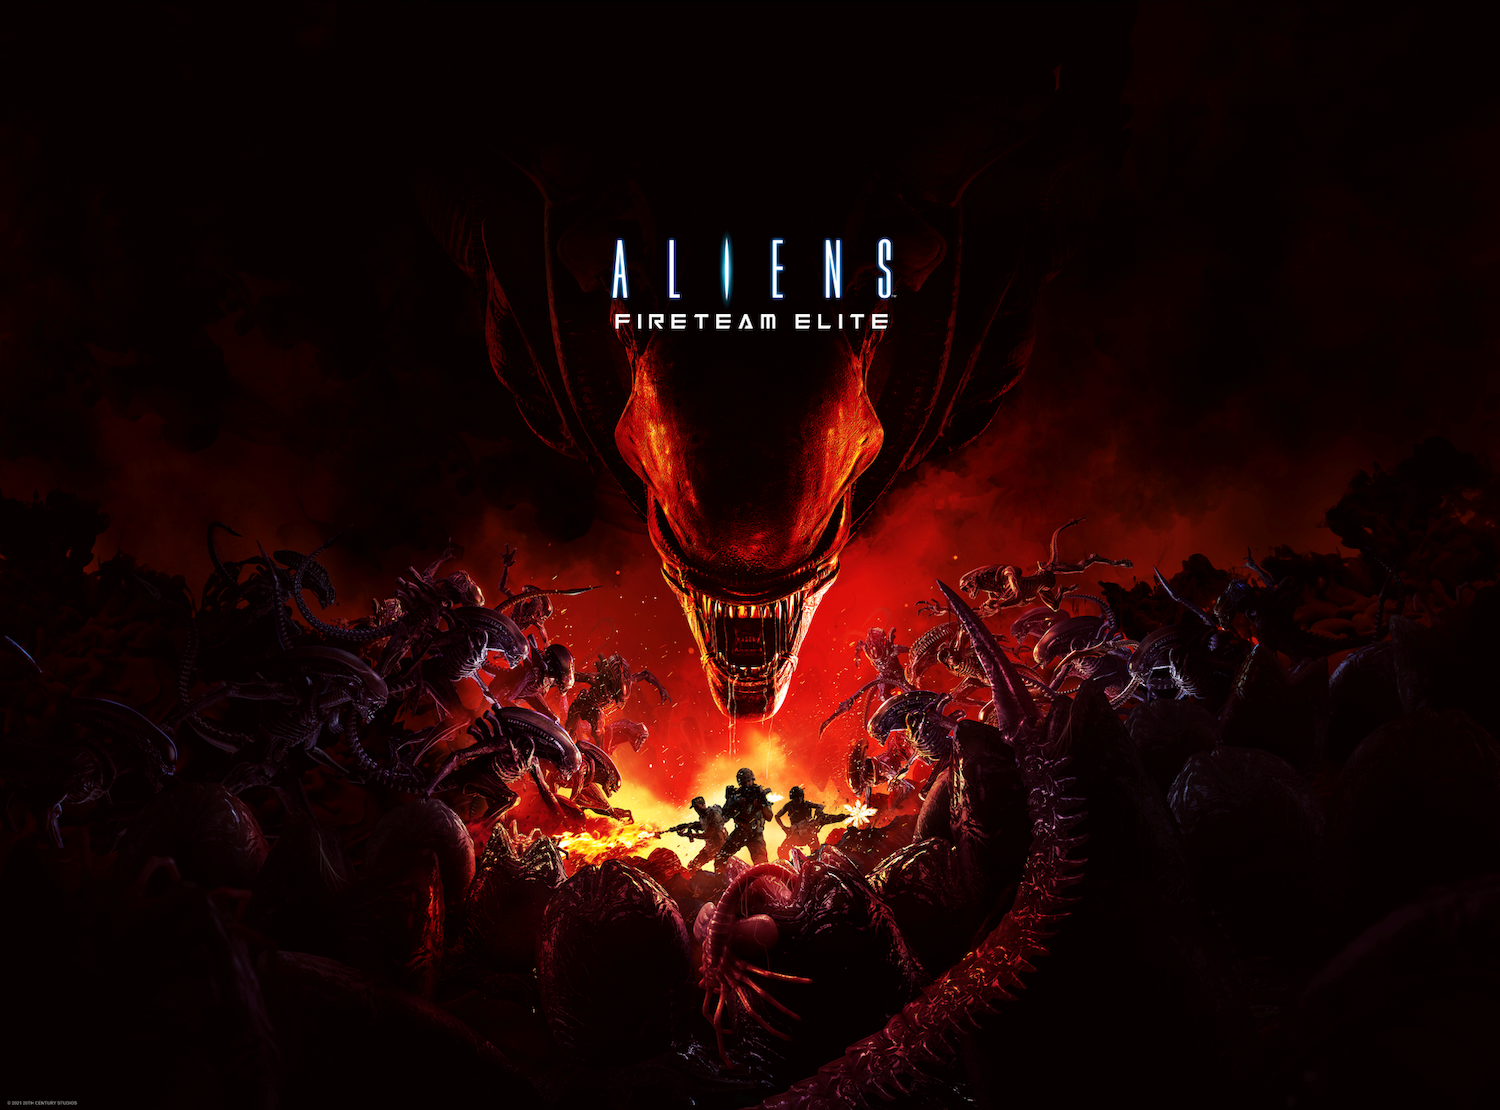 Aliens Fireteam Elite gets a release date for consoles and PC